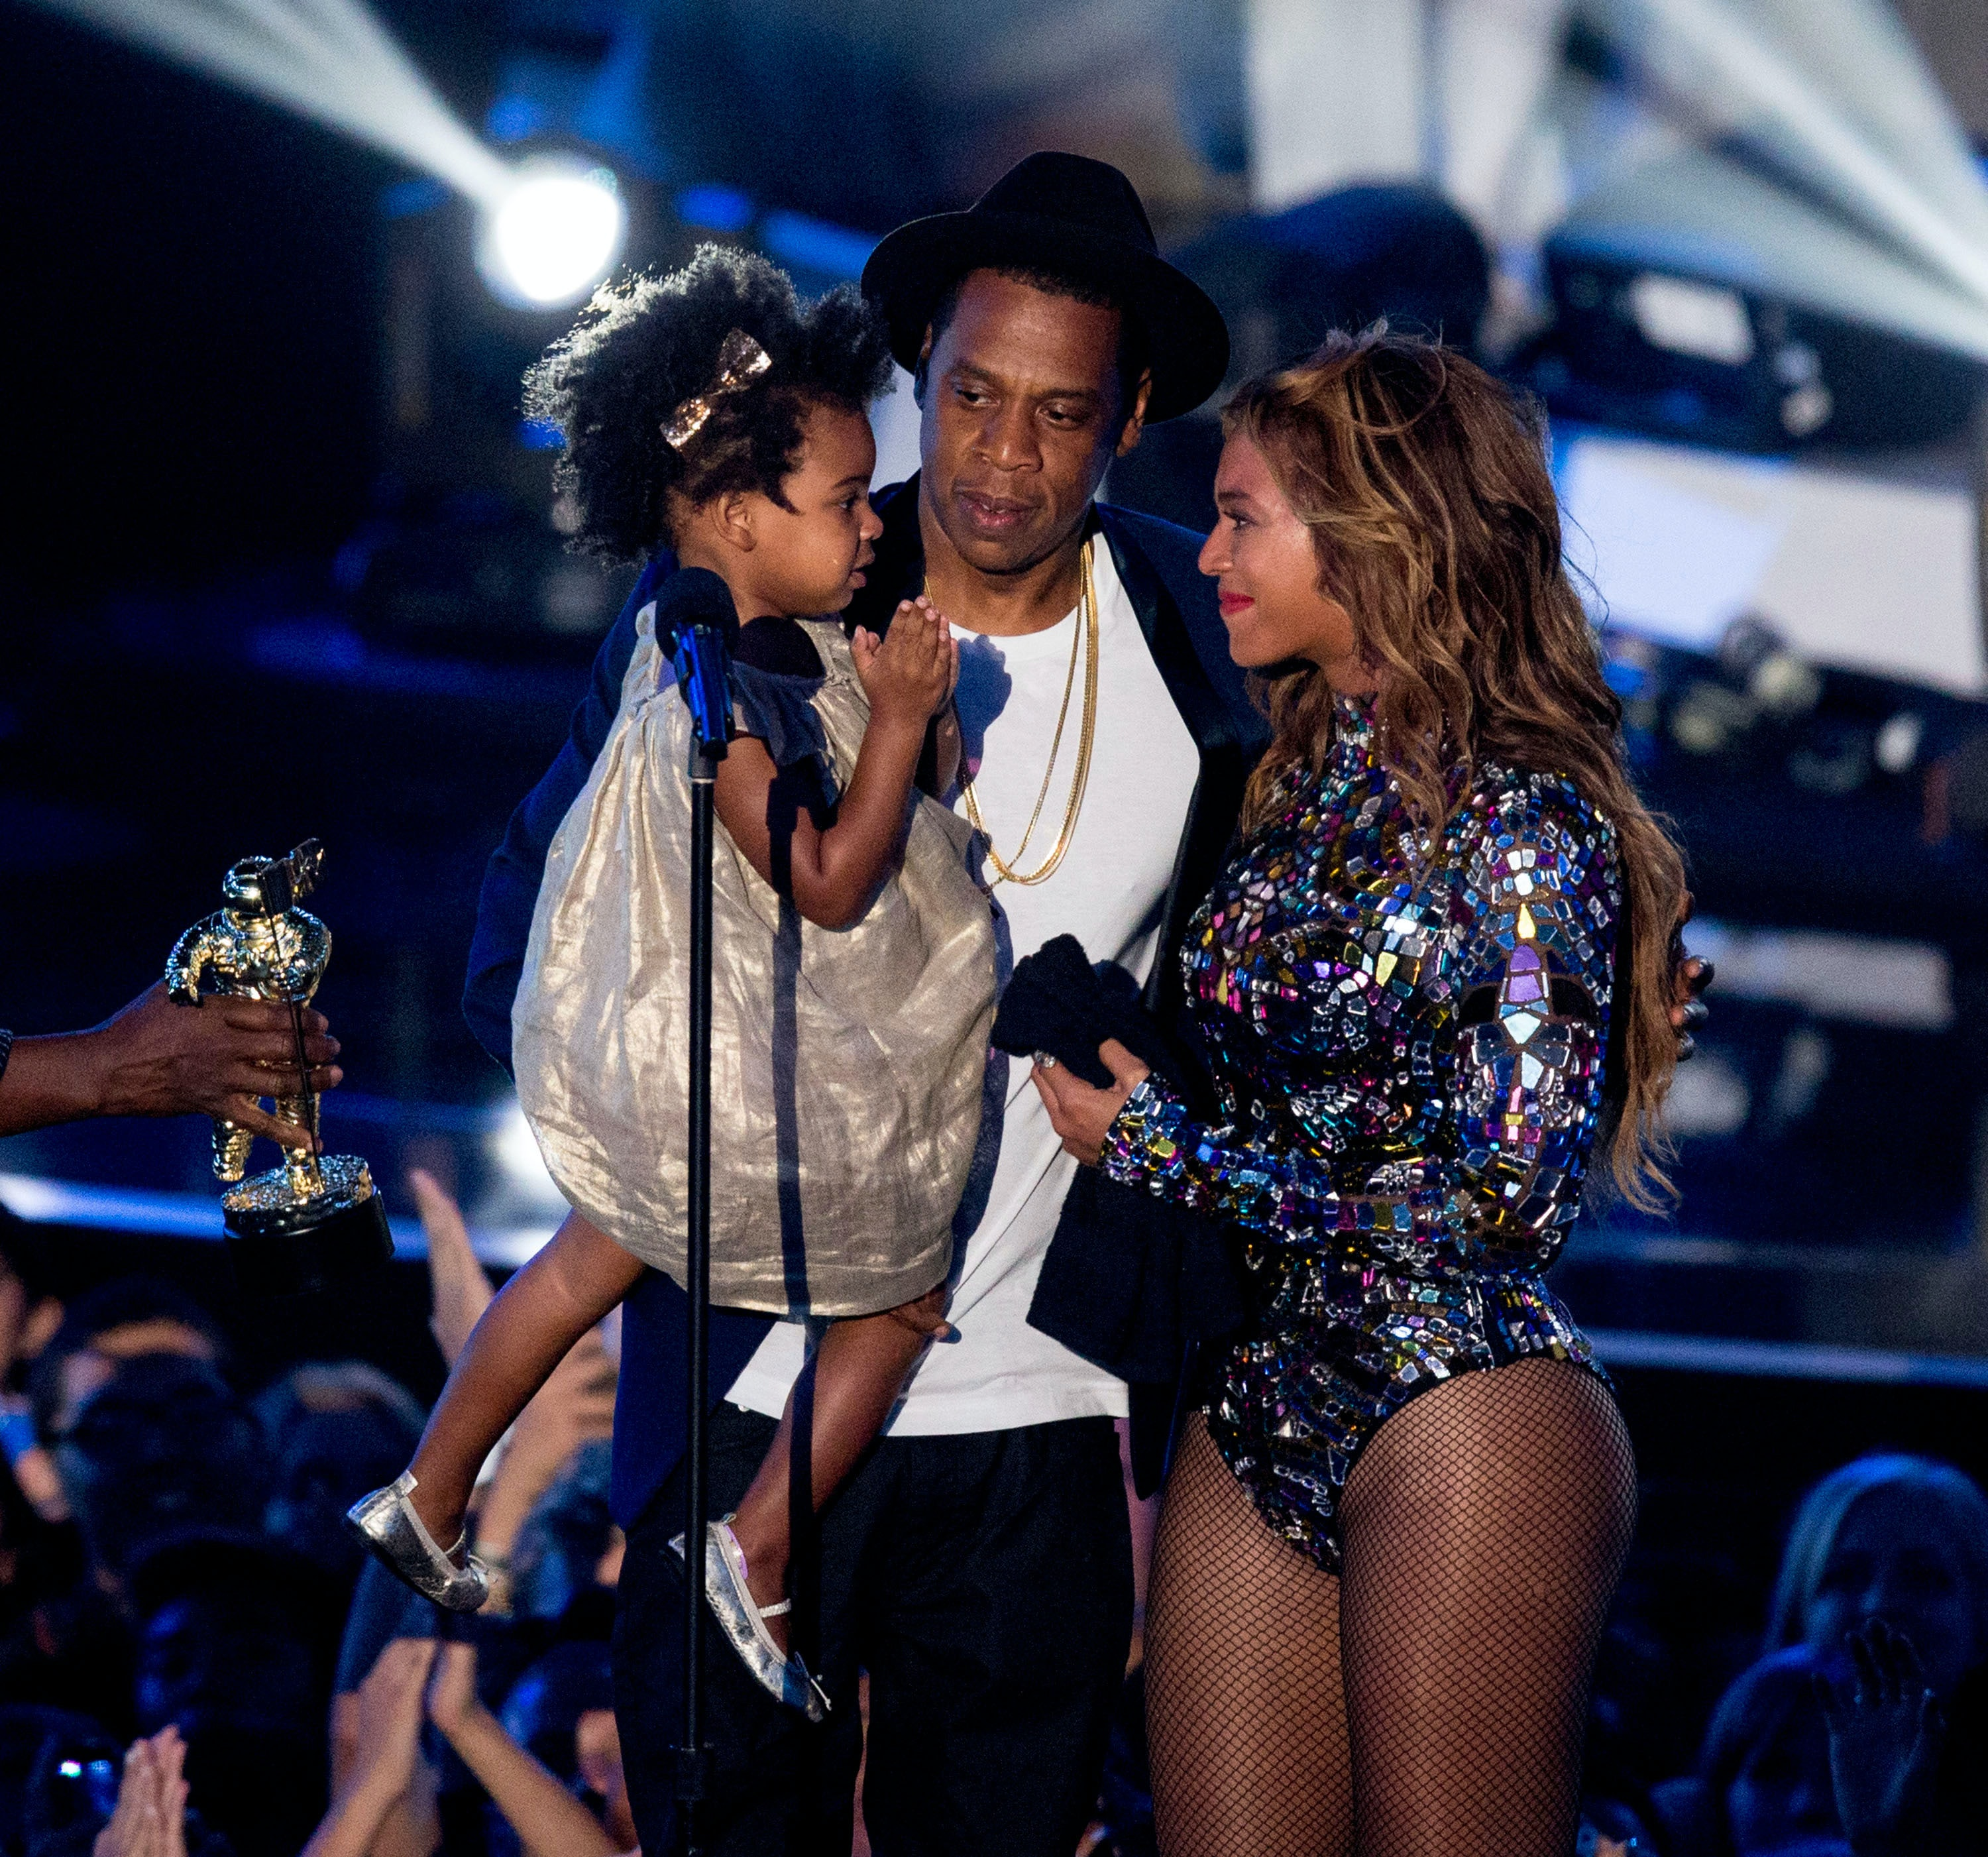 Dressed Like Prince, Blue Ivy Stares Adoringly As Mom Beyonce Performs